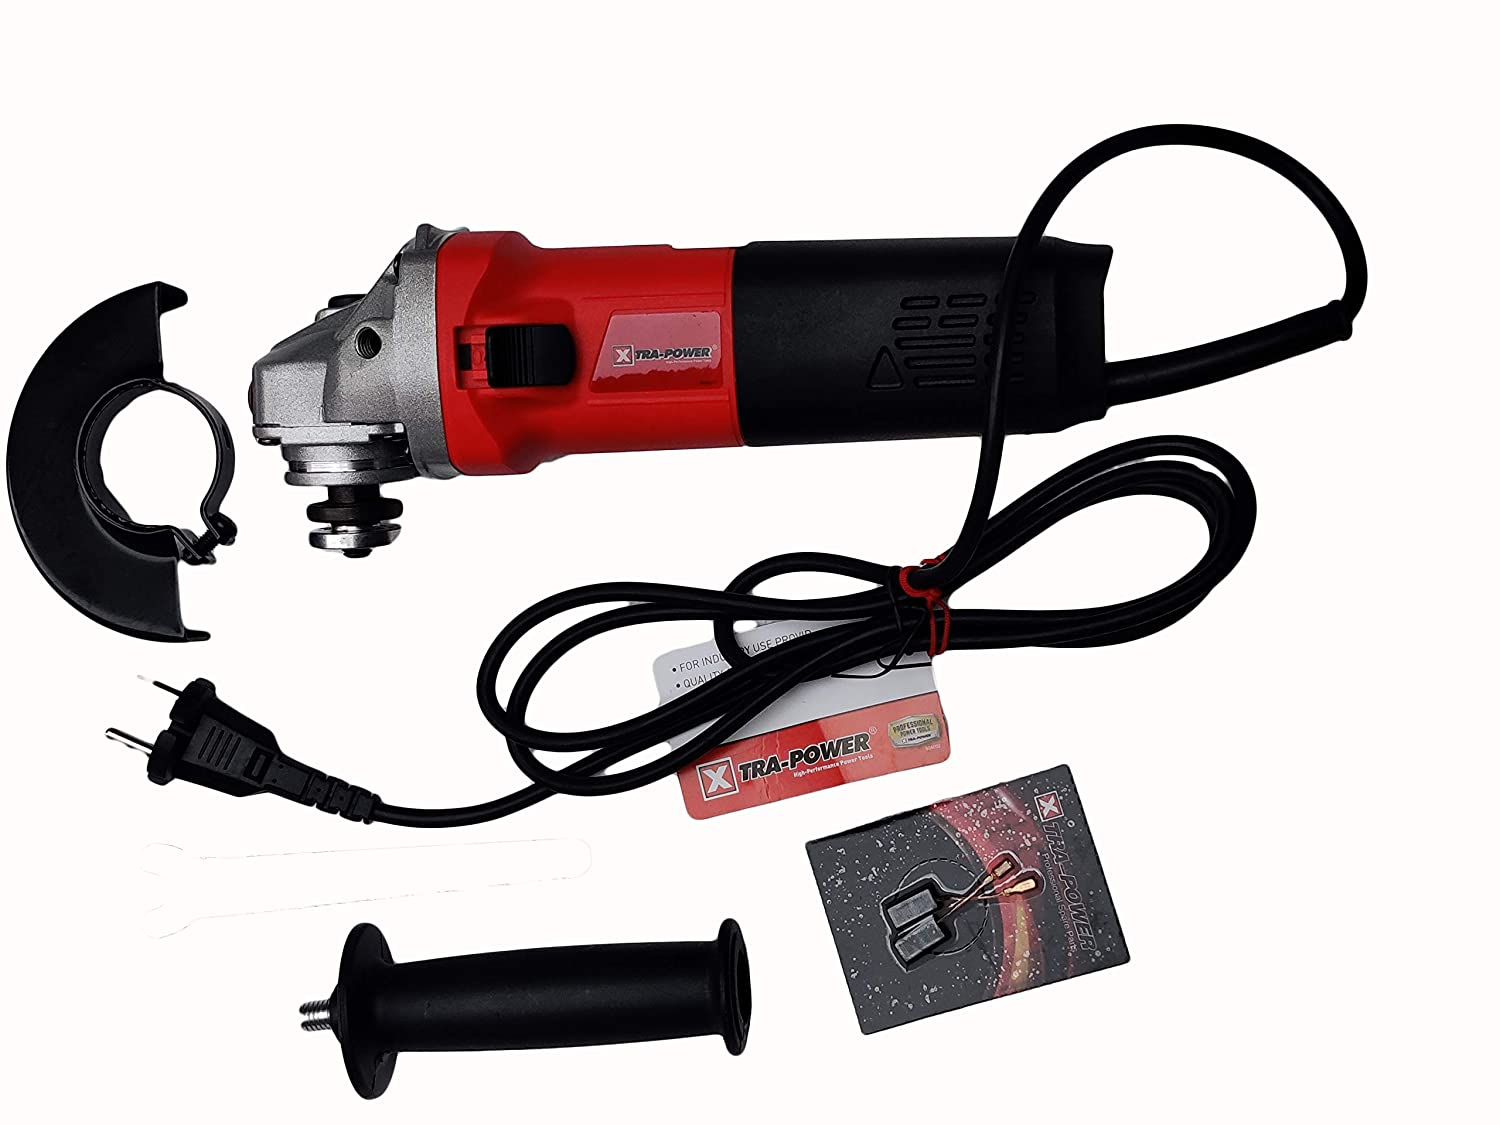 Xtra Power XPT 100mm 710W Professional Angle Grinder